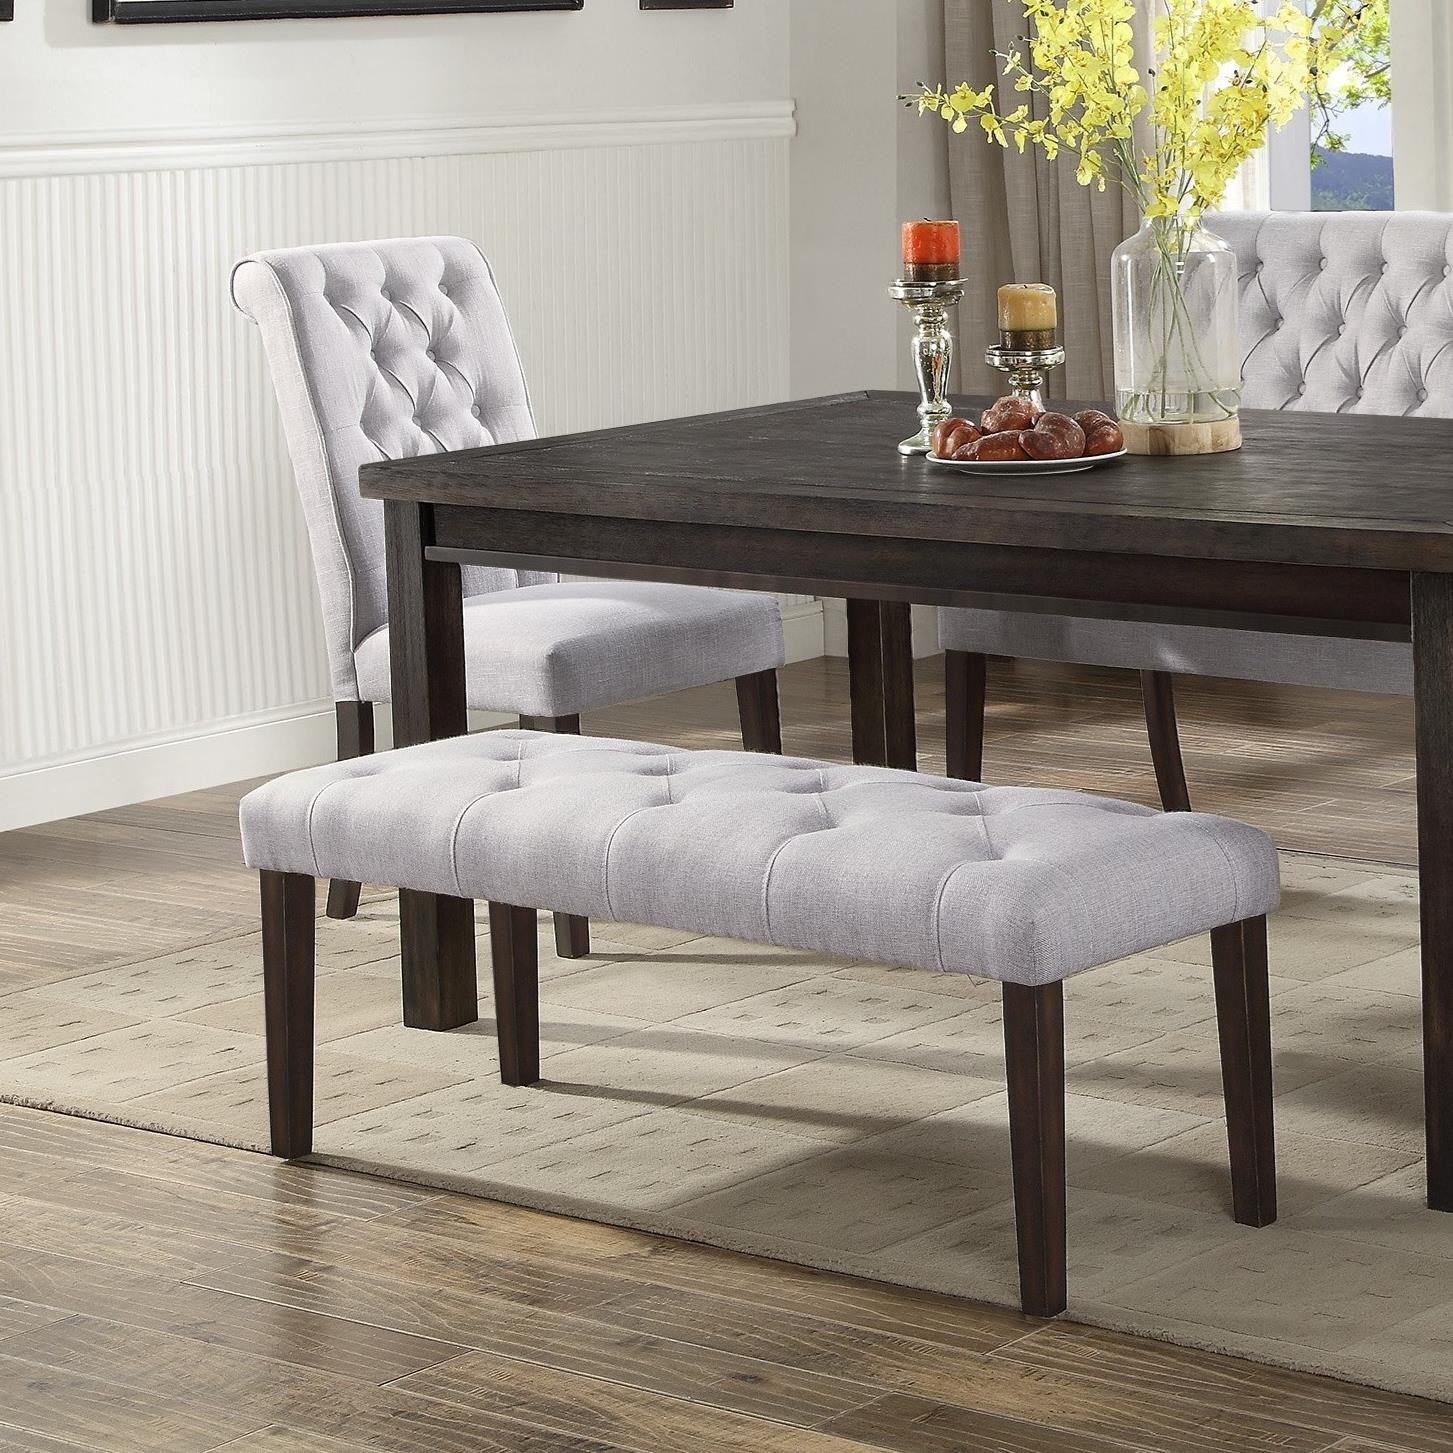 Dining Benches: Del Sol CM Palmer Dining 2022-BENCH Upholstered Dining